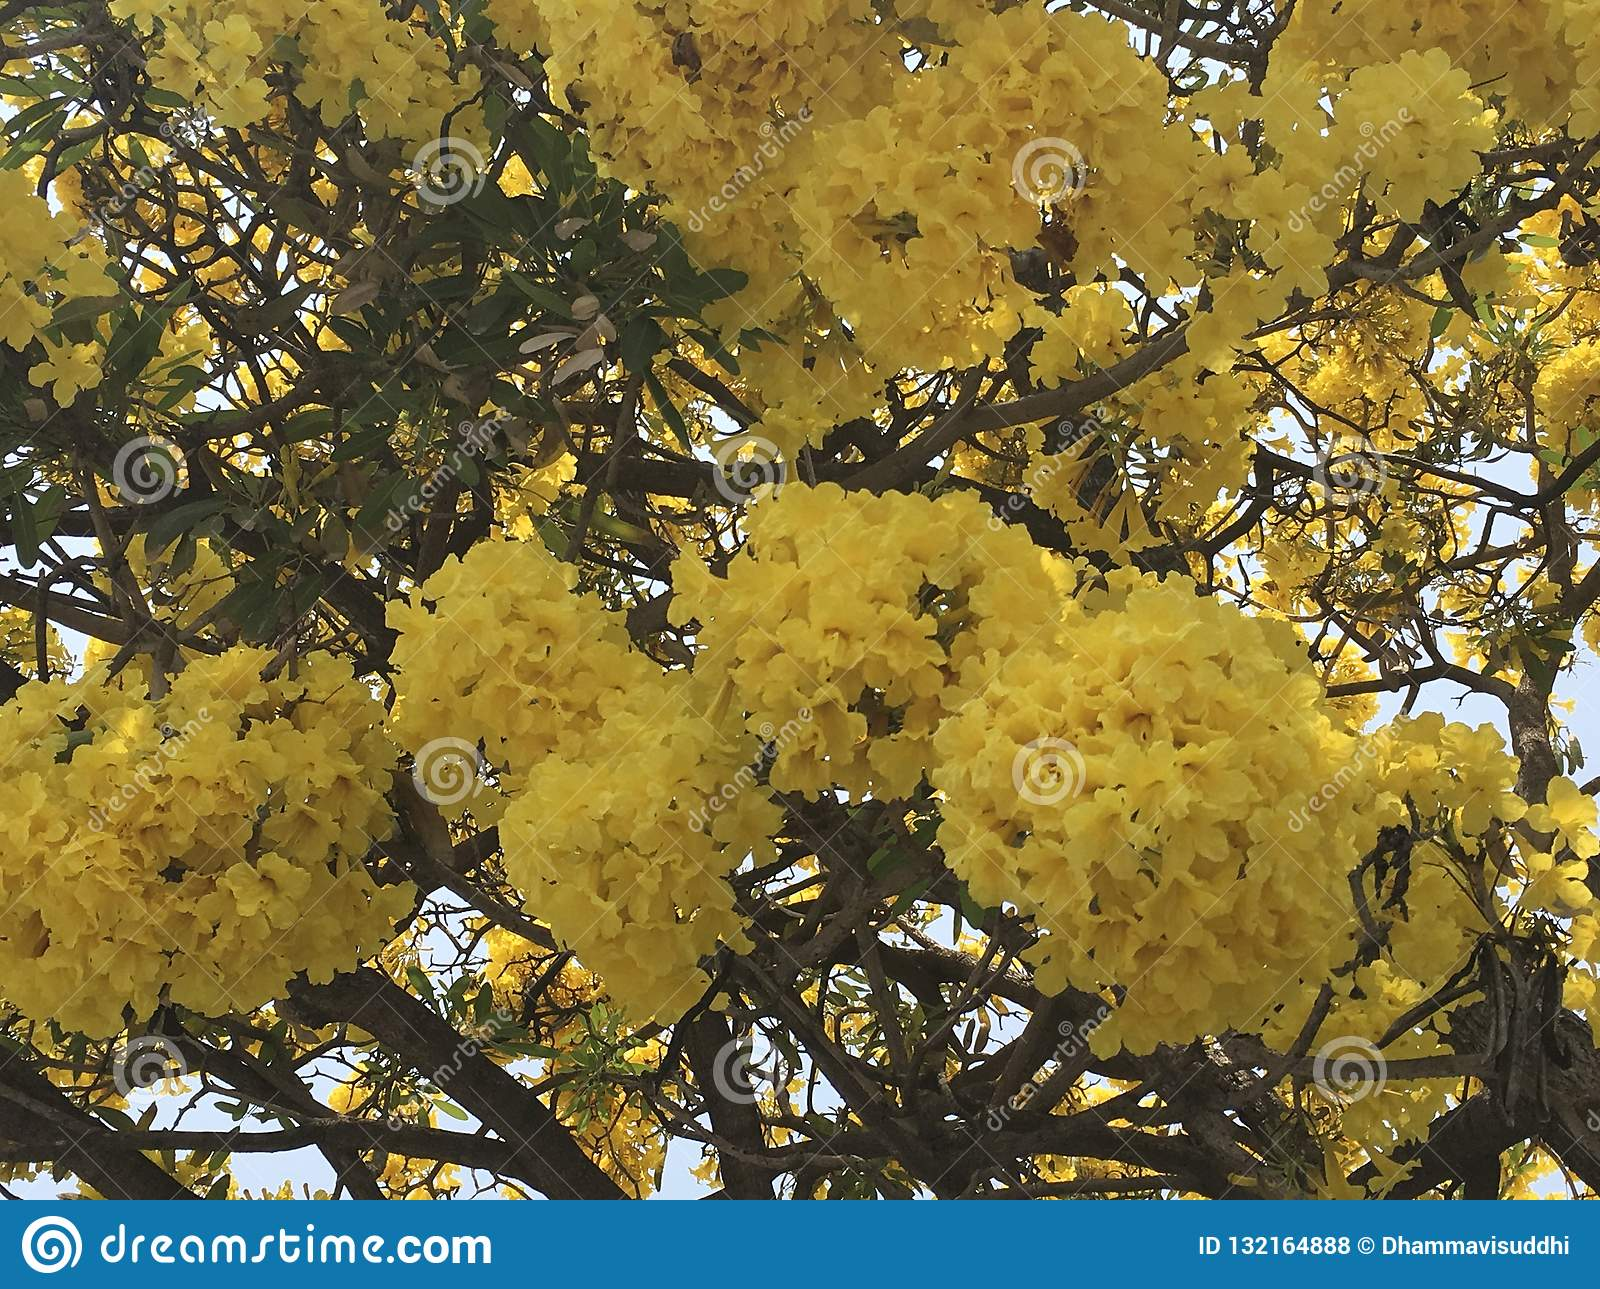 Tropical yellow cotton flower or butter cup tree flower Cochlospermum religiosum on sunny day